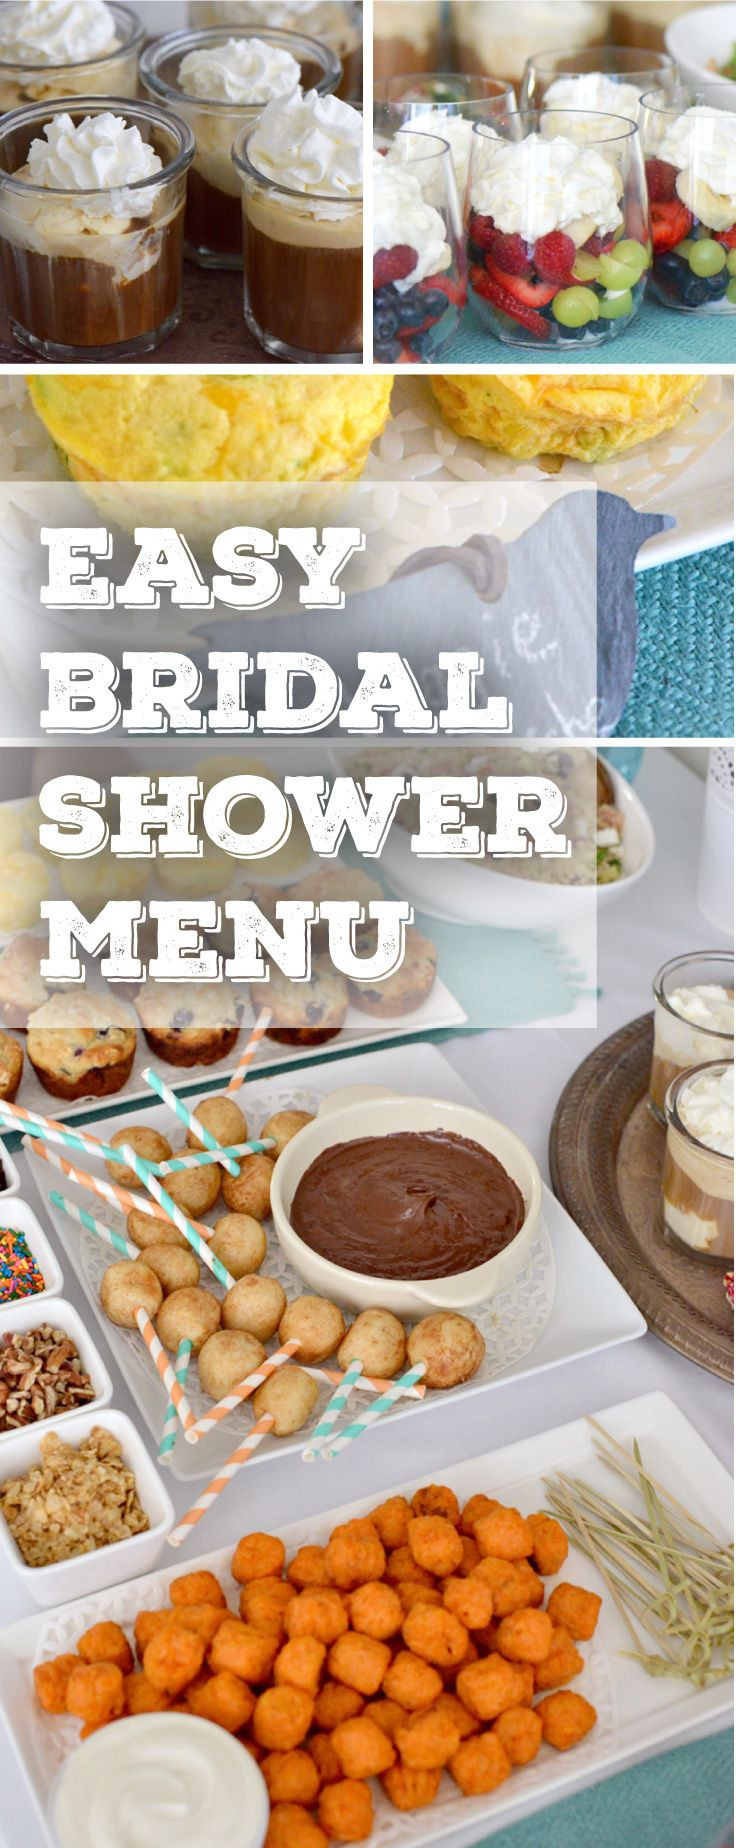 everything you need to plan the perfect bridal shower on a budget